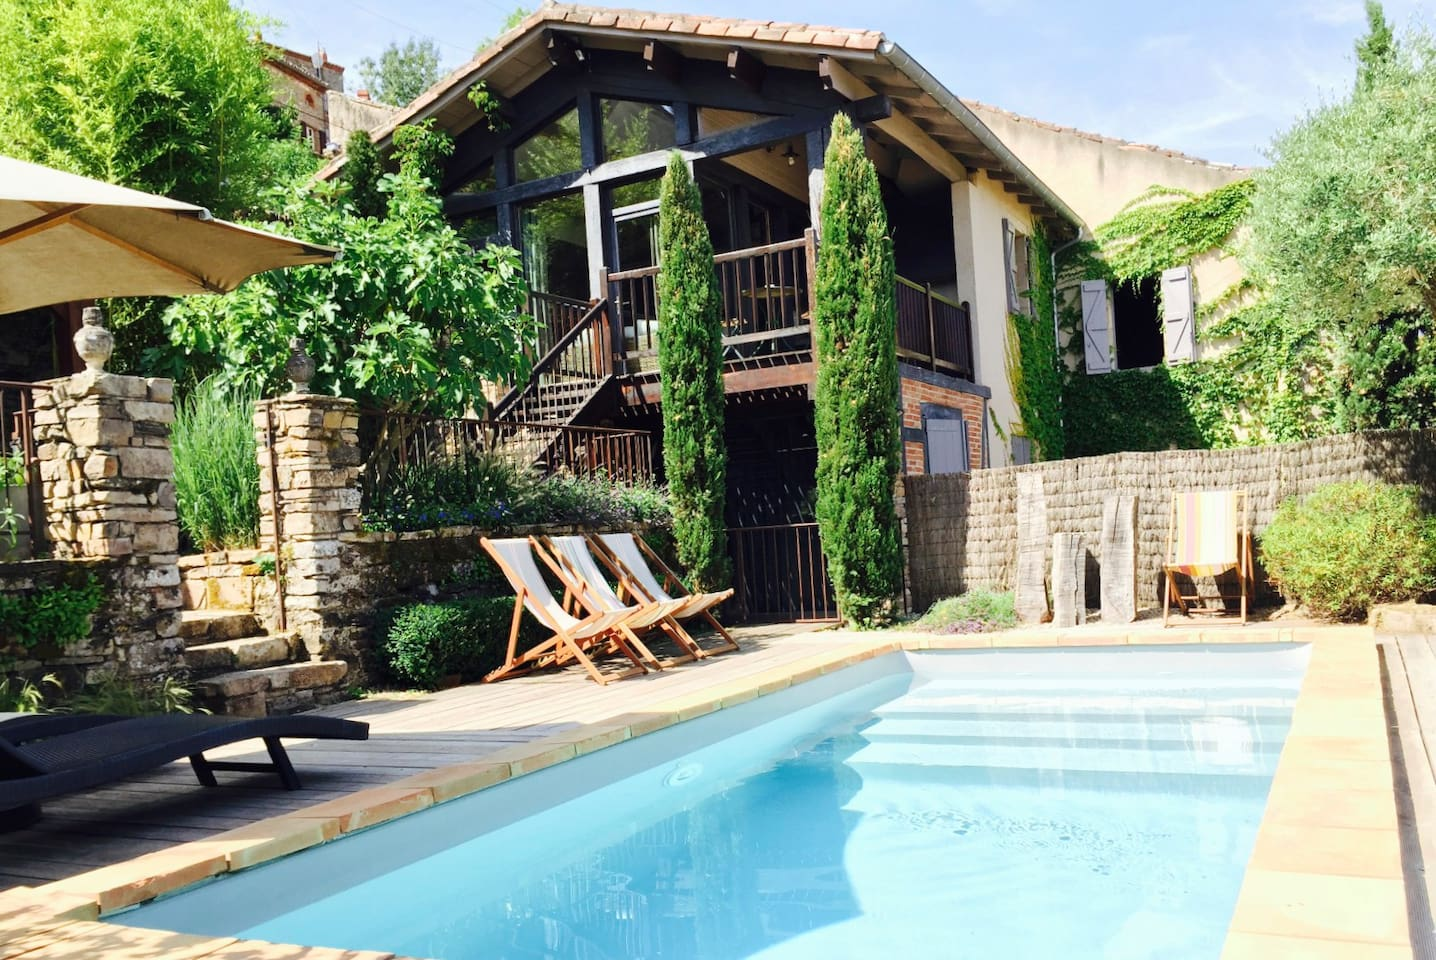 Spectacular garden, pool and restored home